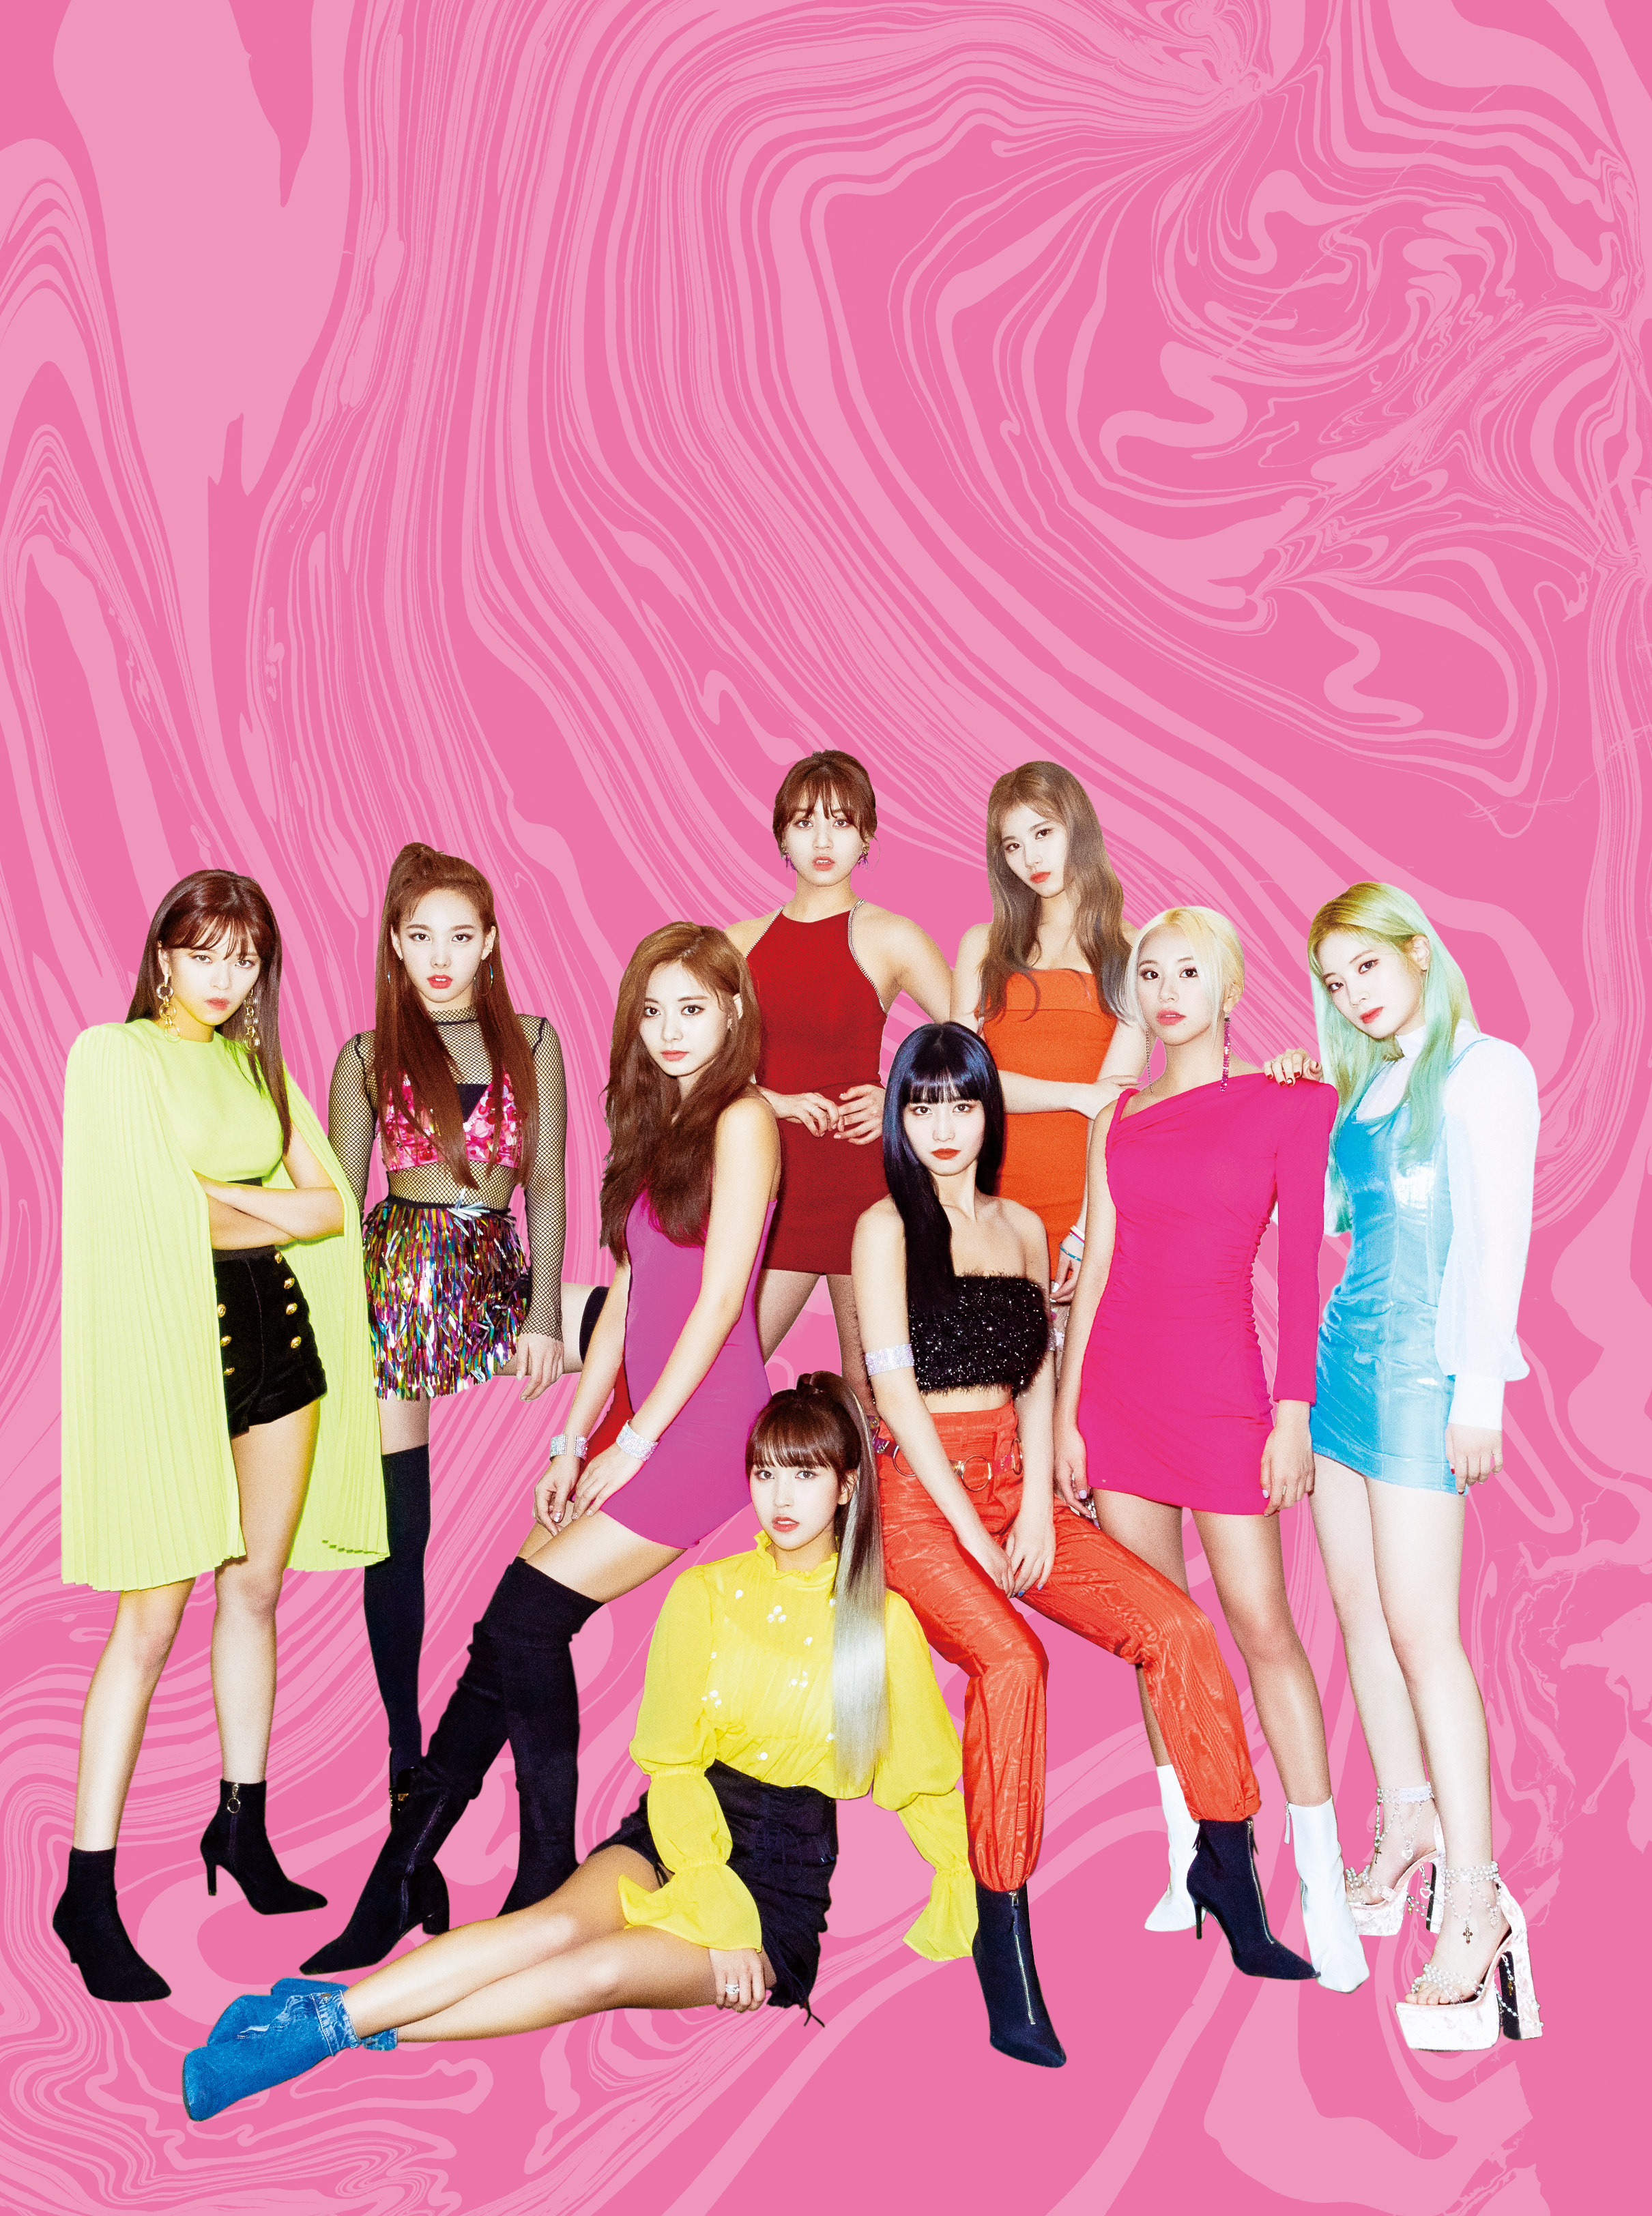 Twice Fancy You Concept Photos Hd Hr Clean K Pop Database Dbkpop Com